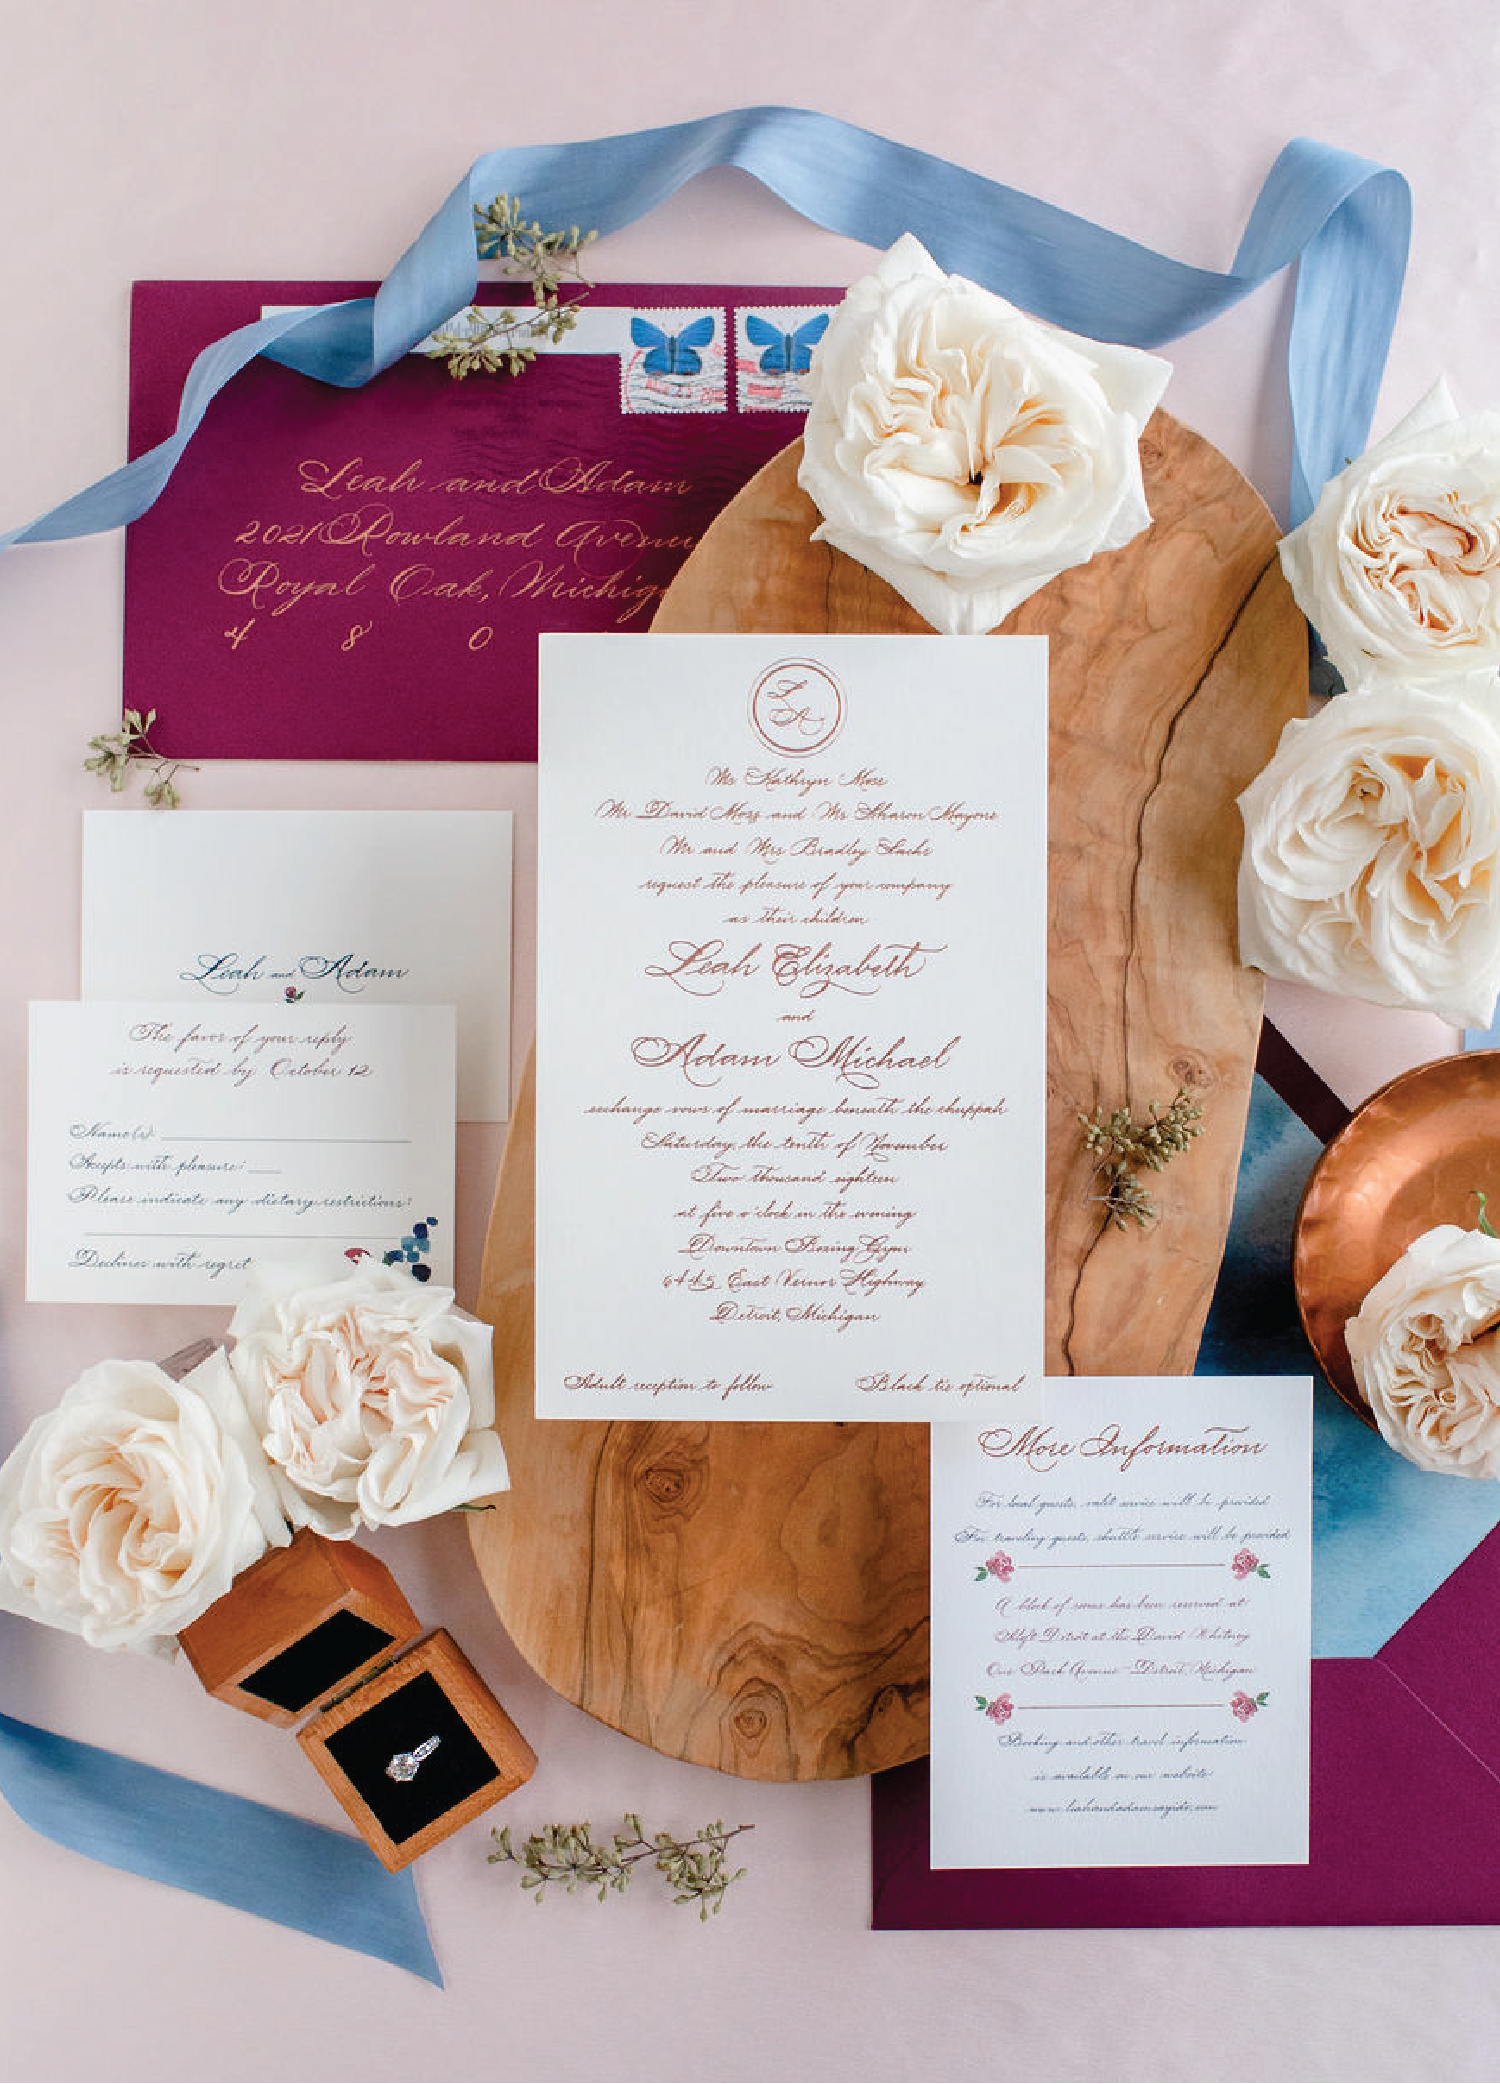 Classic elegant script wedding invitations with calligraphy by Leah E. Moss Designs